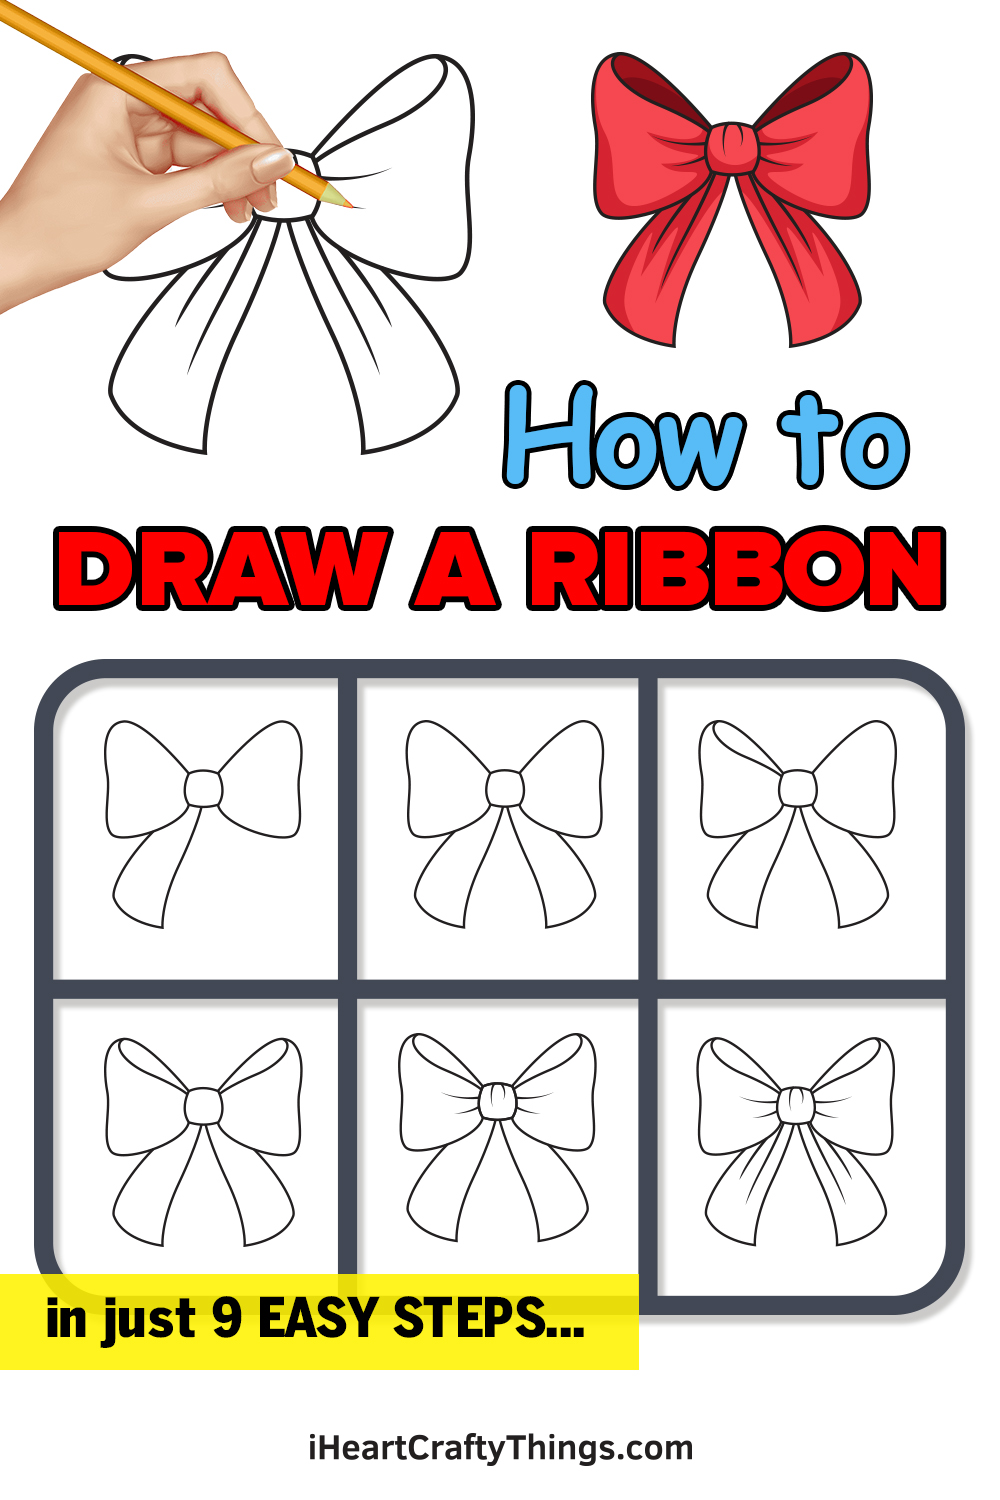 how to draw a ribbon in 9 easy steps